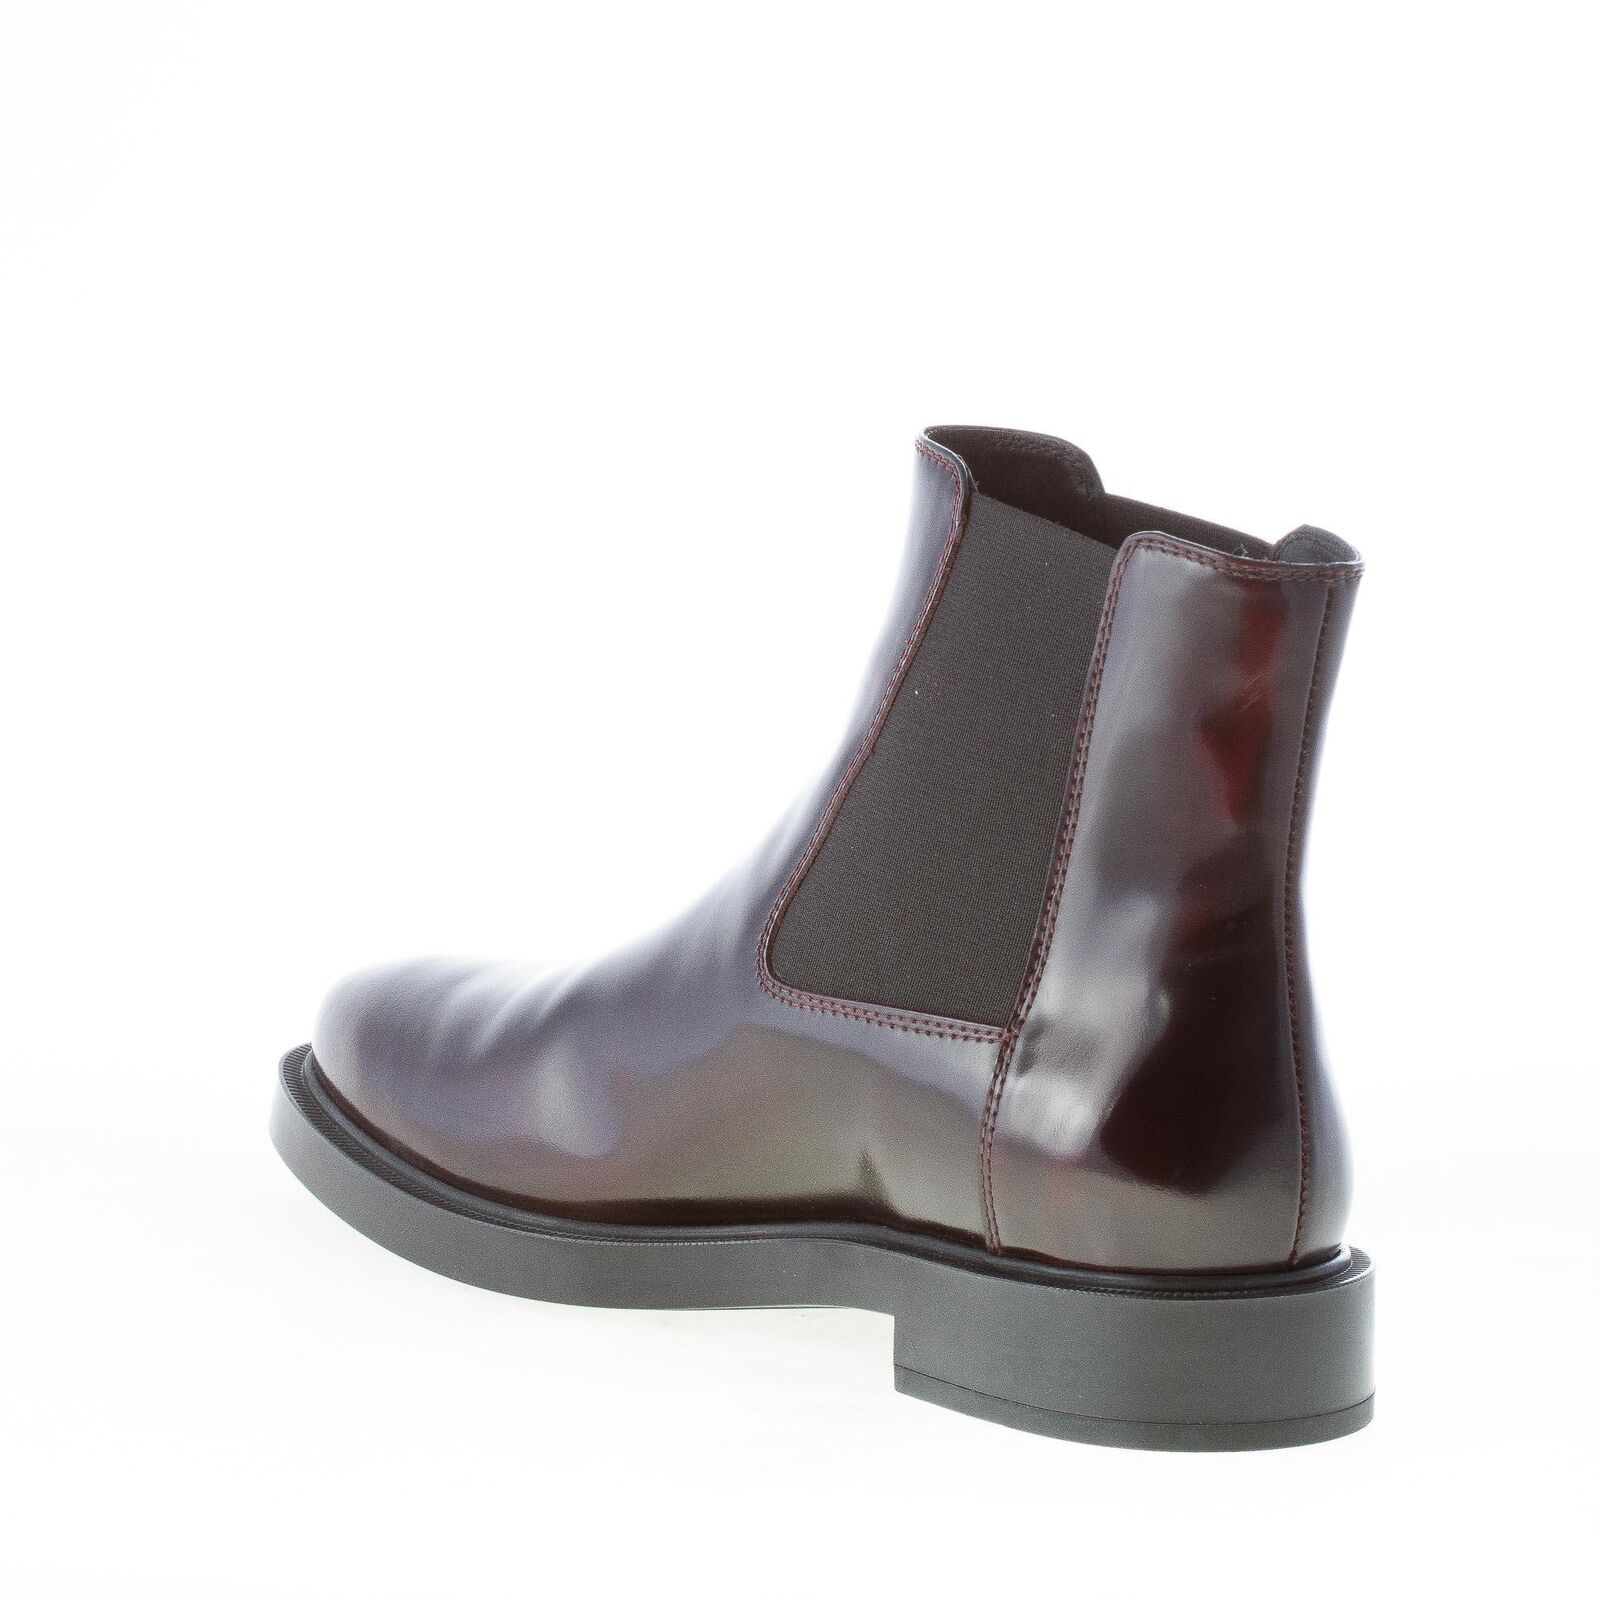 TOD'S leather women shoes Bordeaux smooth leather TOD'S Chelsea boot XXW0ZP0V830AKTR802 51428b